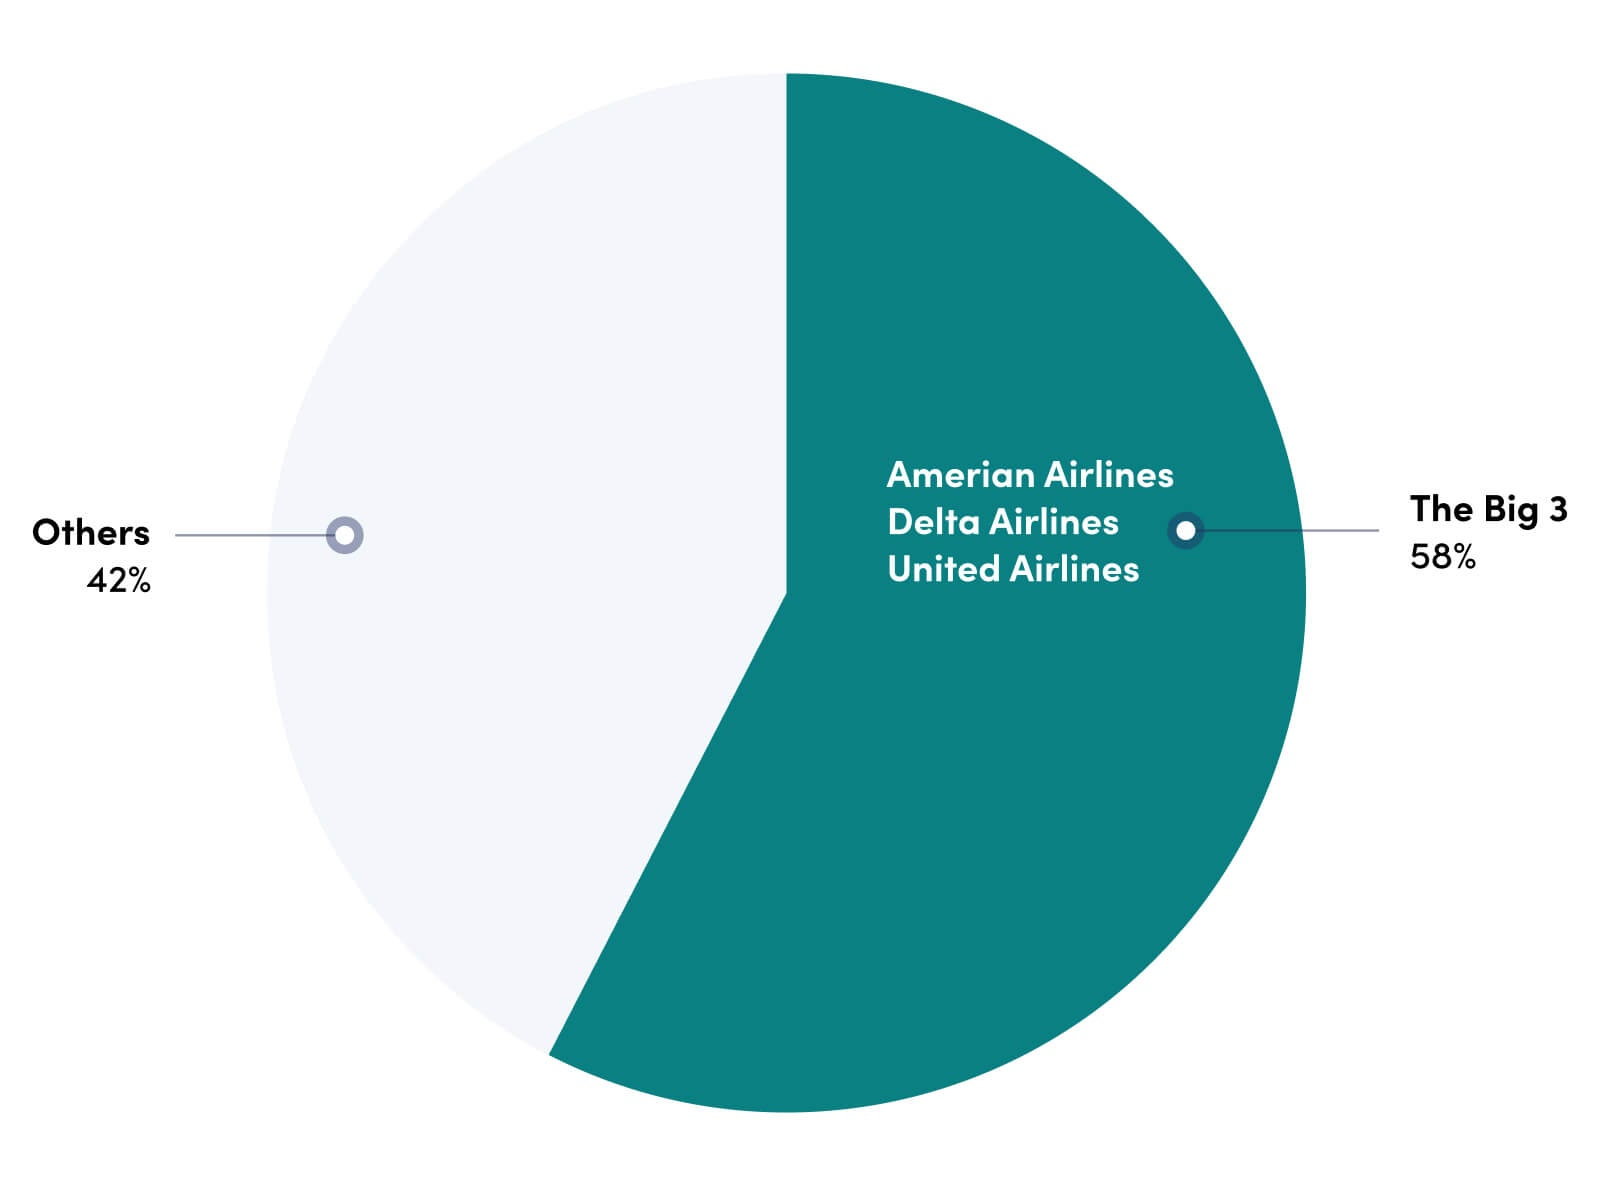 share of flight deals by big 3 vs all other airlines.